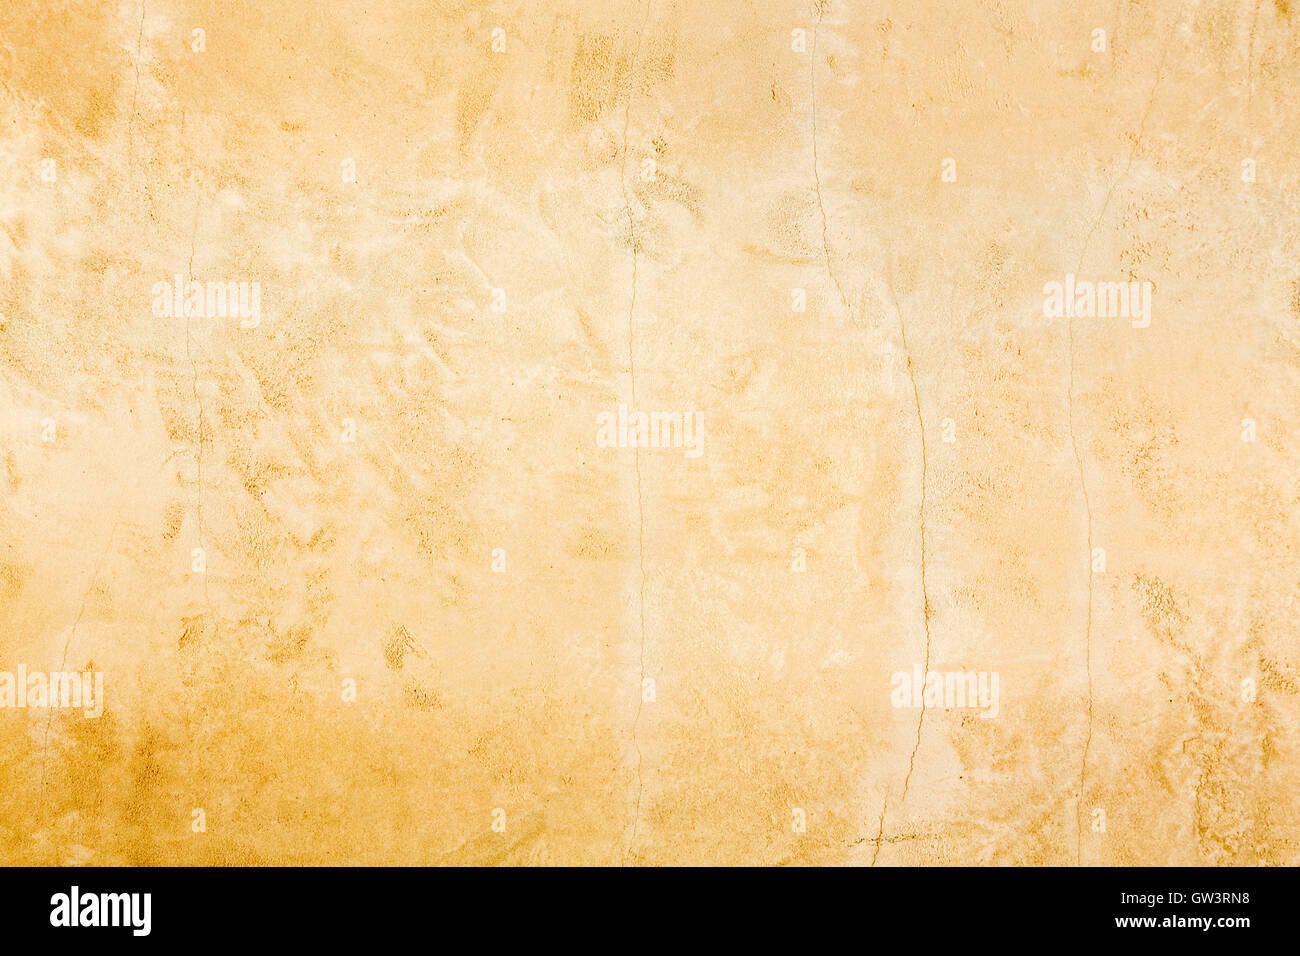 Rustic old aged gold stucco wall distressed background texture - Stock Image